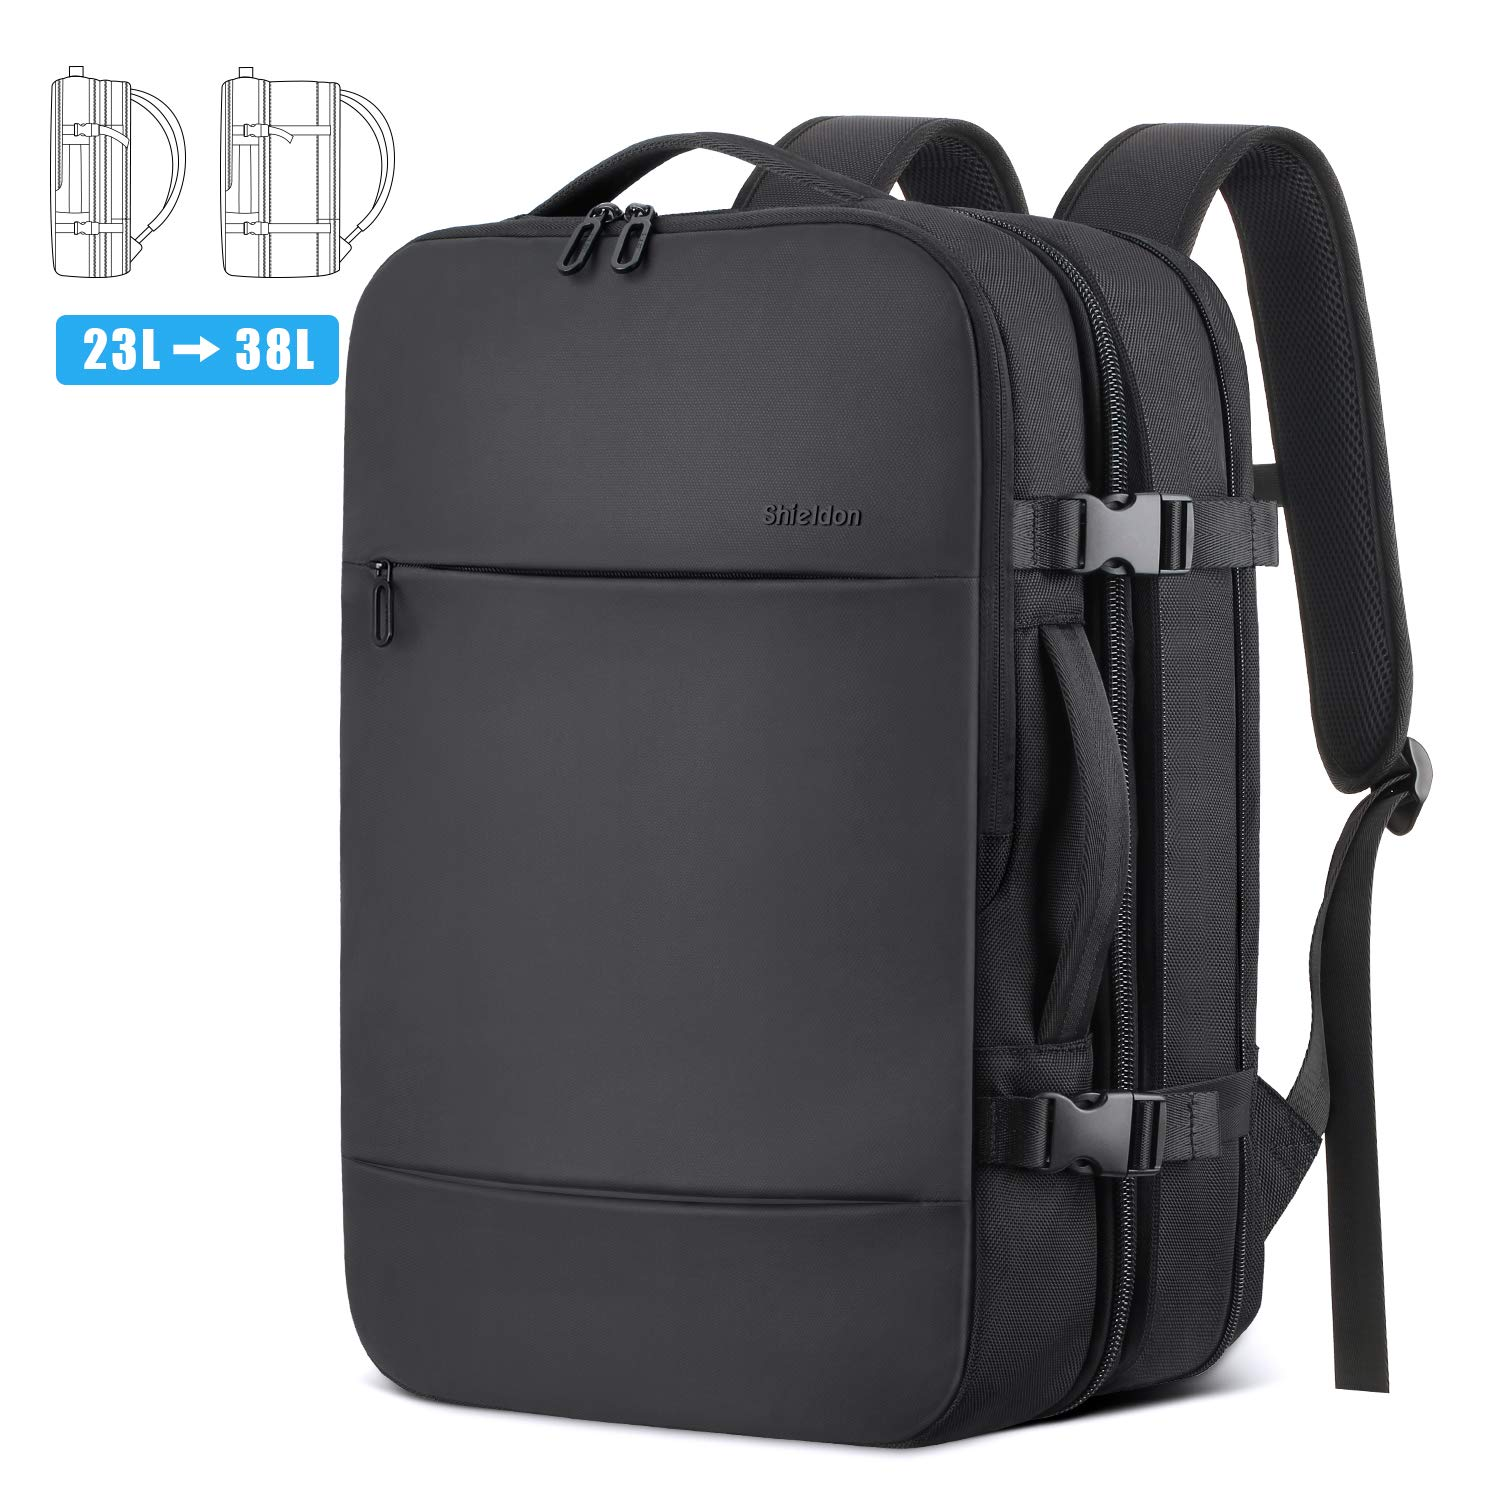 SHIELDON 17-inch Laptop Backpack, Adjustable 23L-38L Expandable Travel Backpack with Anti-Theft Pocket Water Repellent Durable Carry-on Multipurpose Bag, Business Weekender Luggage Backpack - Black